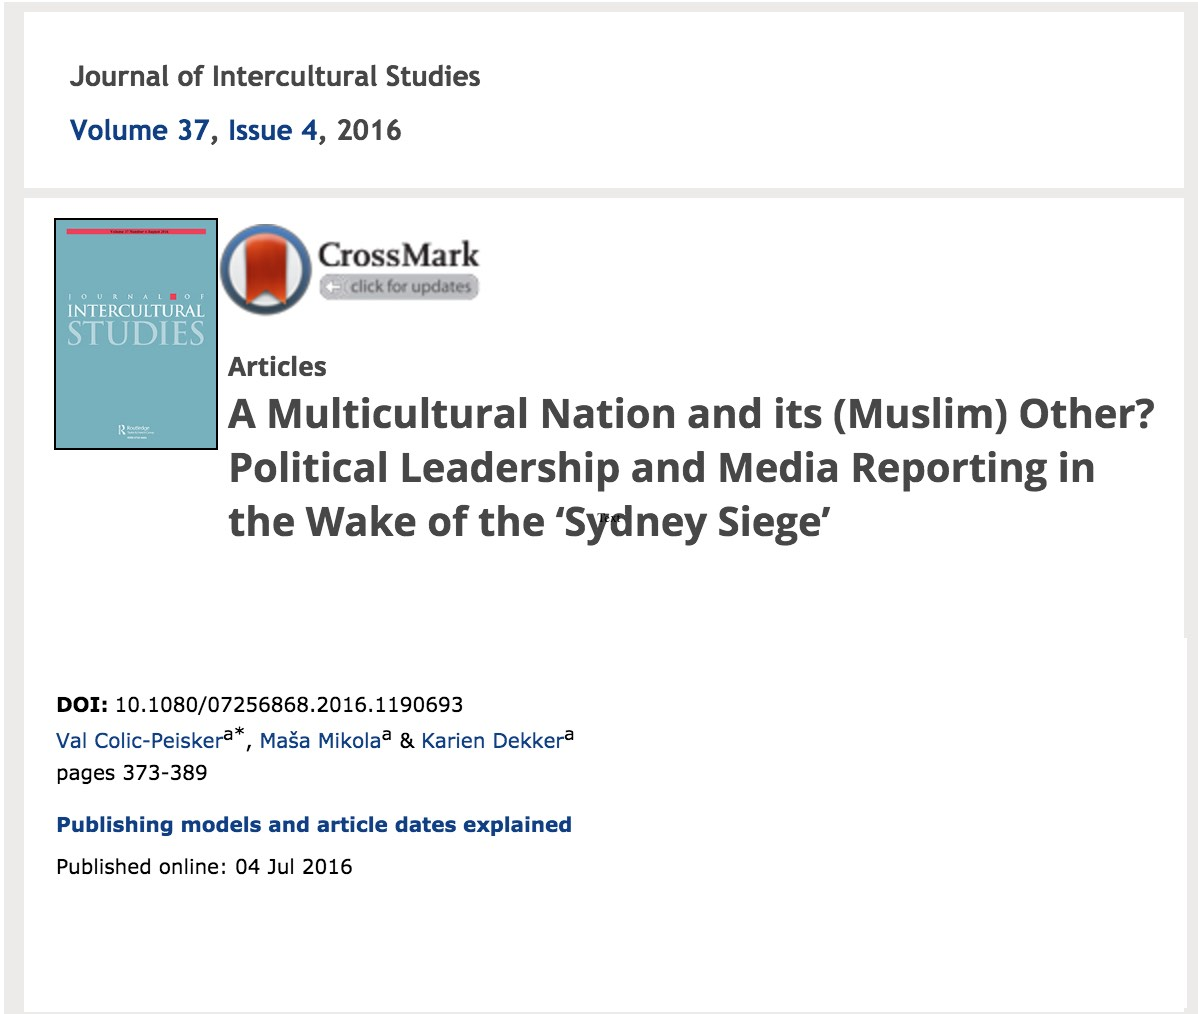 A timely article by Val Colic-Peisker with colleagues Masa Mikola and Karien Dekker.